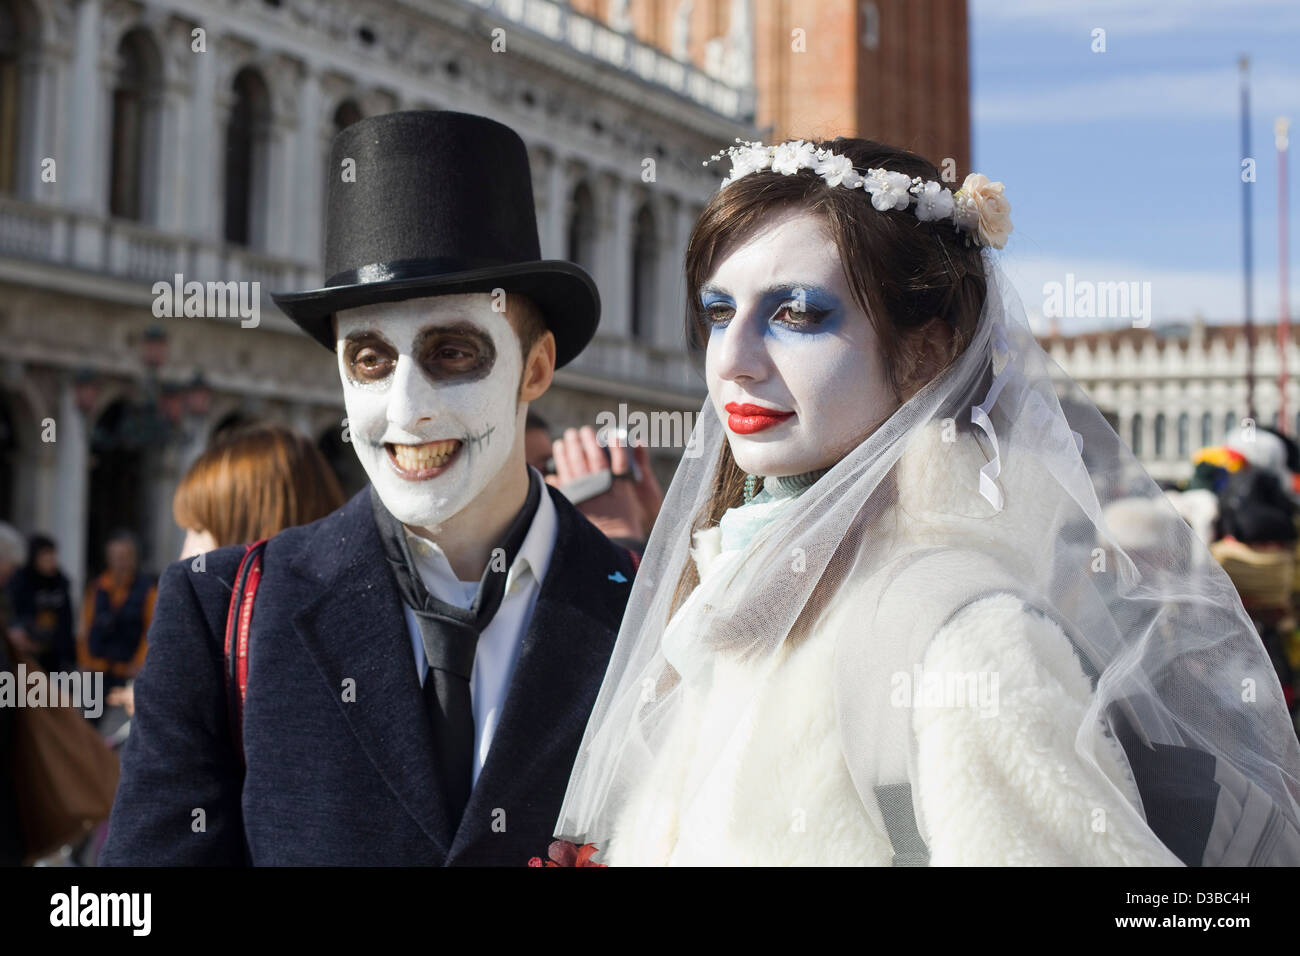 Bride and Groom in fancy dress for the Venice Carnival Venice Italy Stock Photo